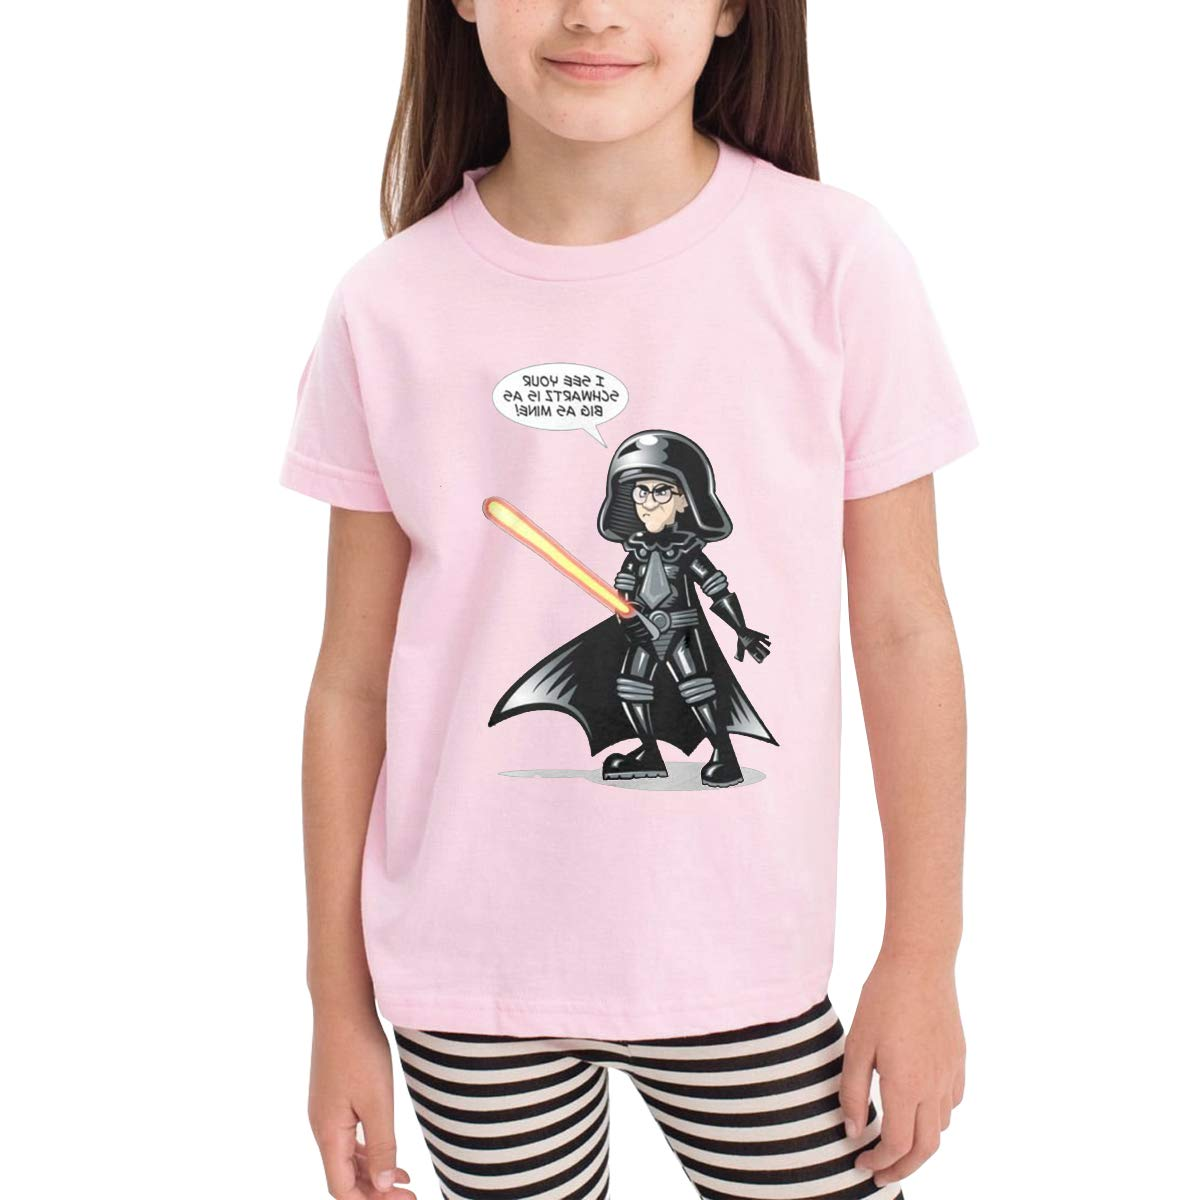 Patricia FordT 6-24 Month Baby T-Shirt Loose Self-Cultivation 2-6 Year Old Childrens T-Shirt The Vermin The Fanart Logo Pink